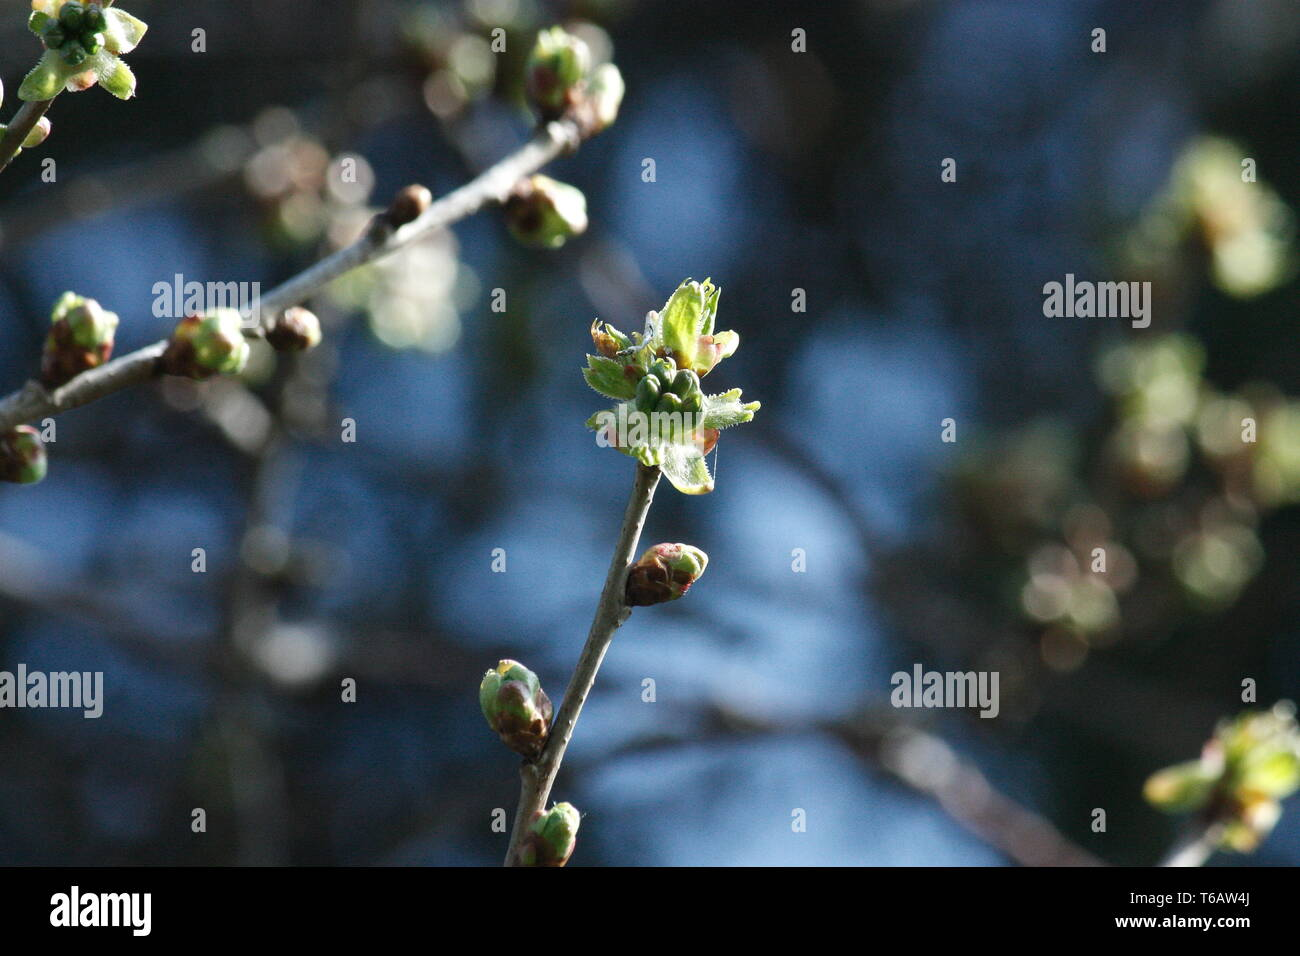 Fruit tree branch with swelling, Floating eden buds - Stock Image